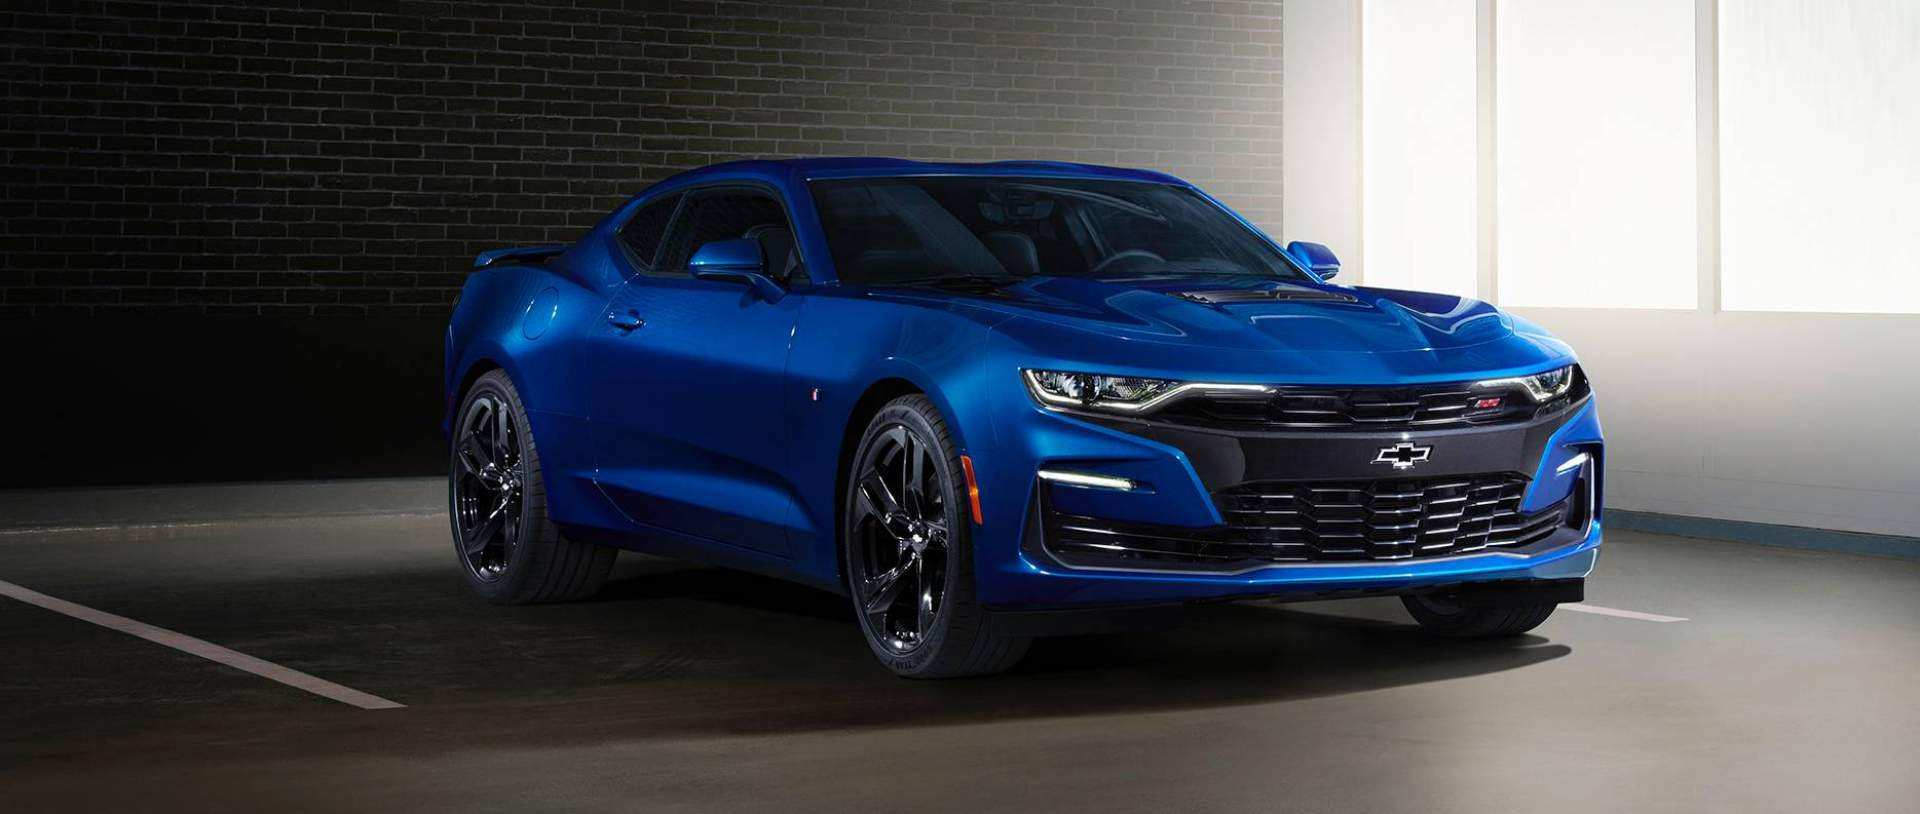 74 Best Review 2020 The All Chevy Camaro Reviews by 2020 The All Chevy Camaro